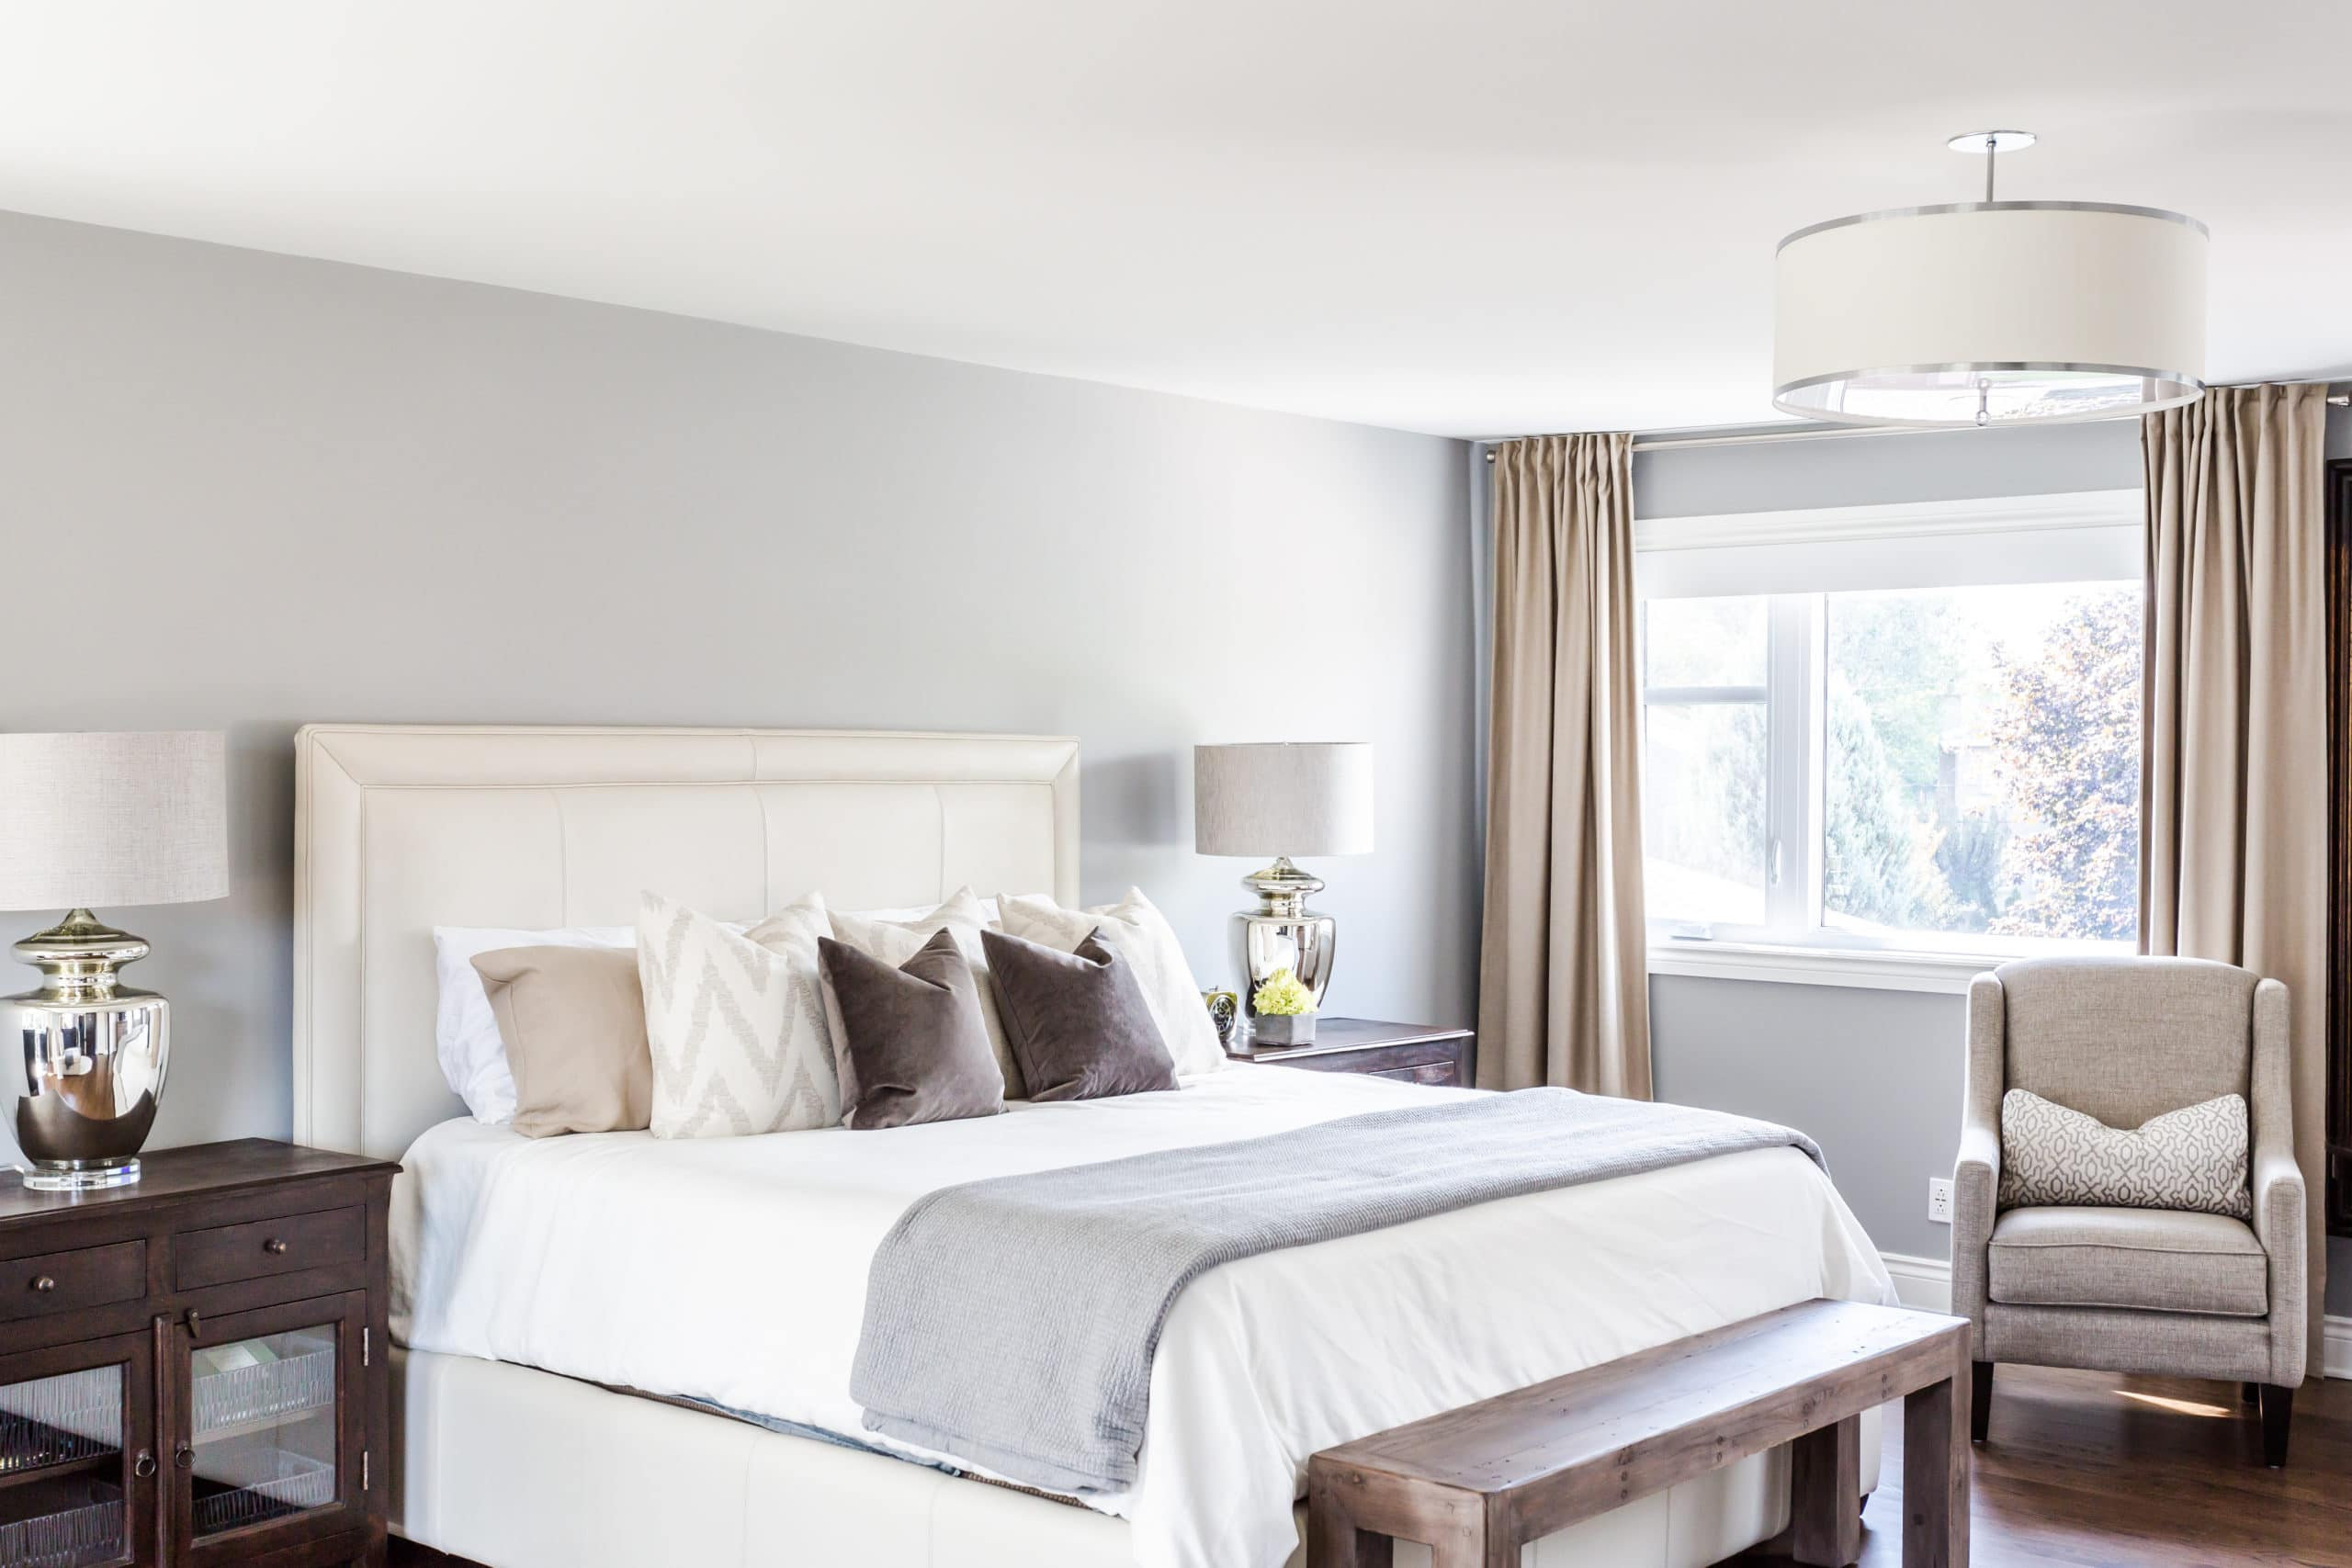 Modern master bedroom containing a large white bed